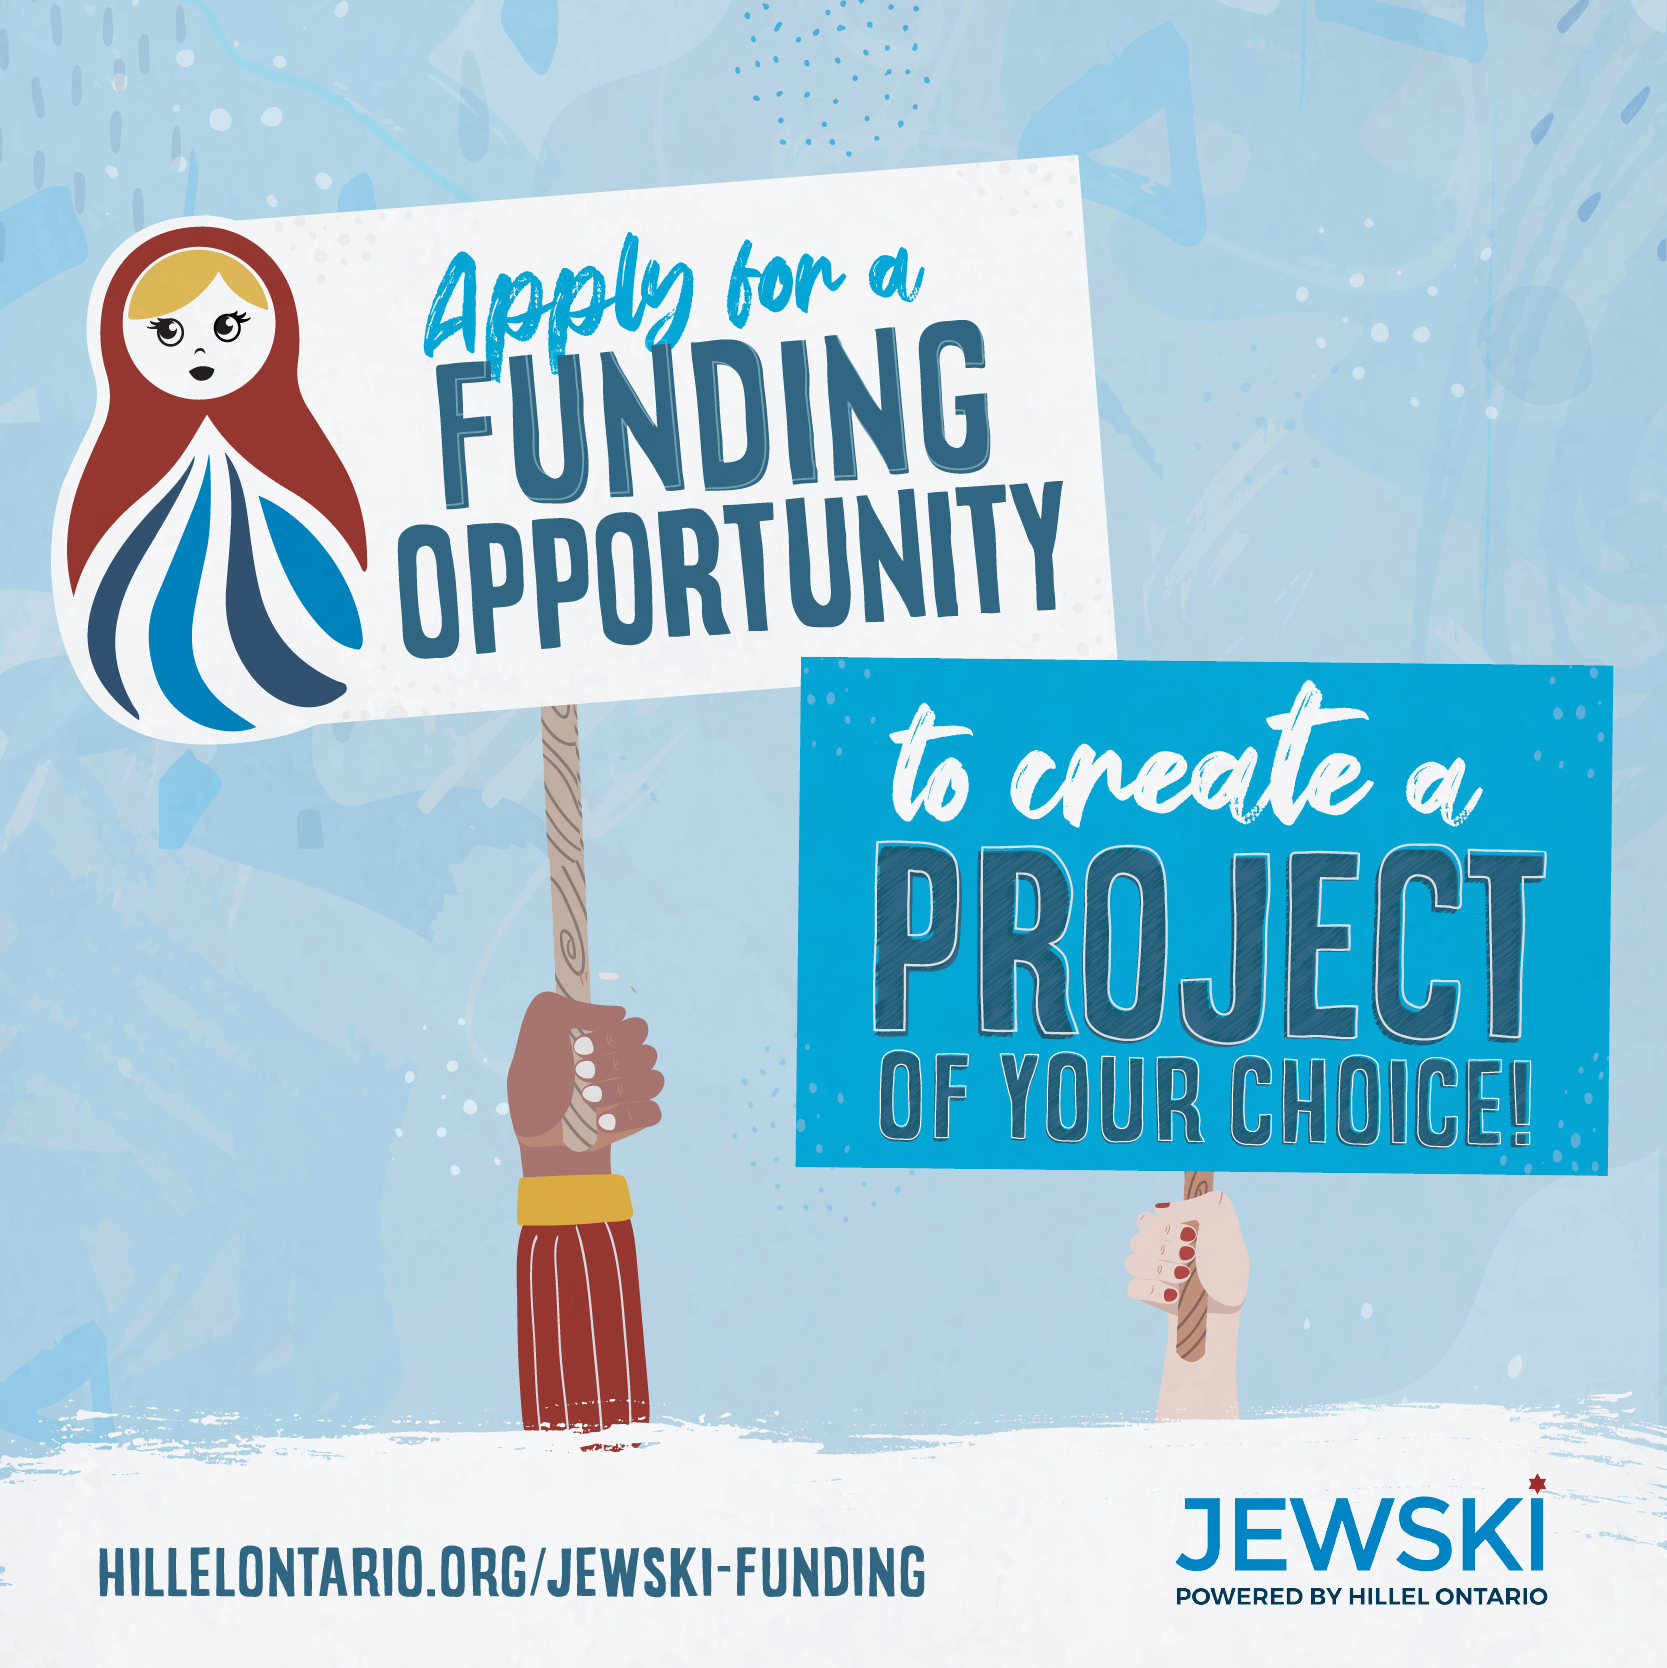 Apply for a funding opportunity to create a project of your choice! Sign up at hillelontario.org/jewski-funding/